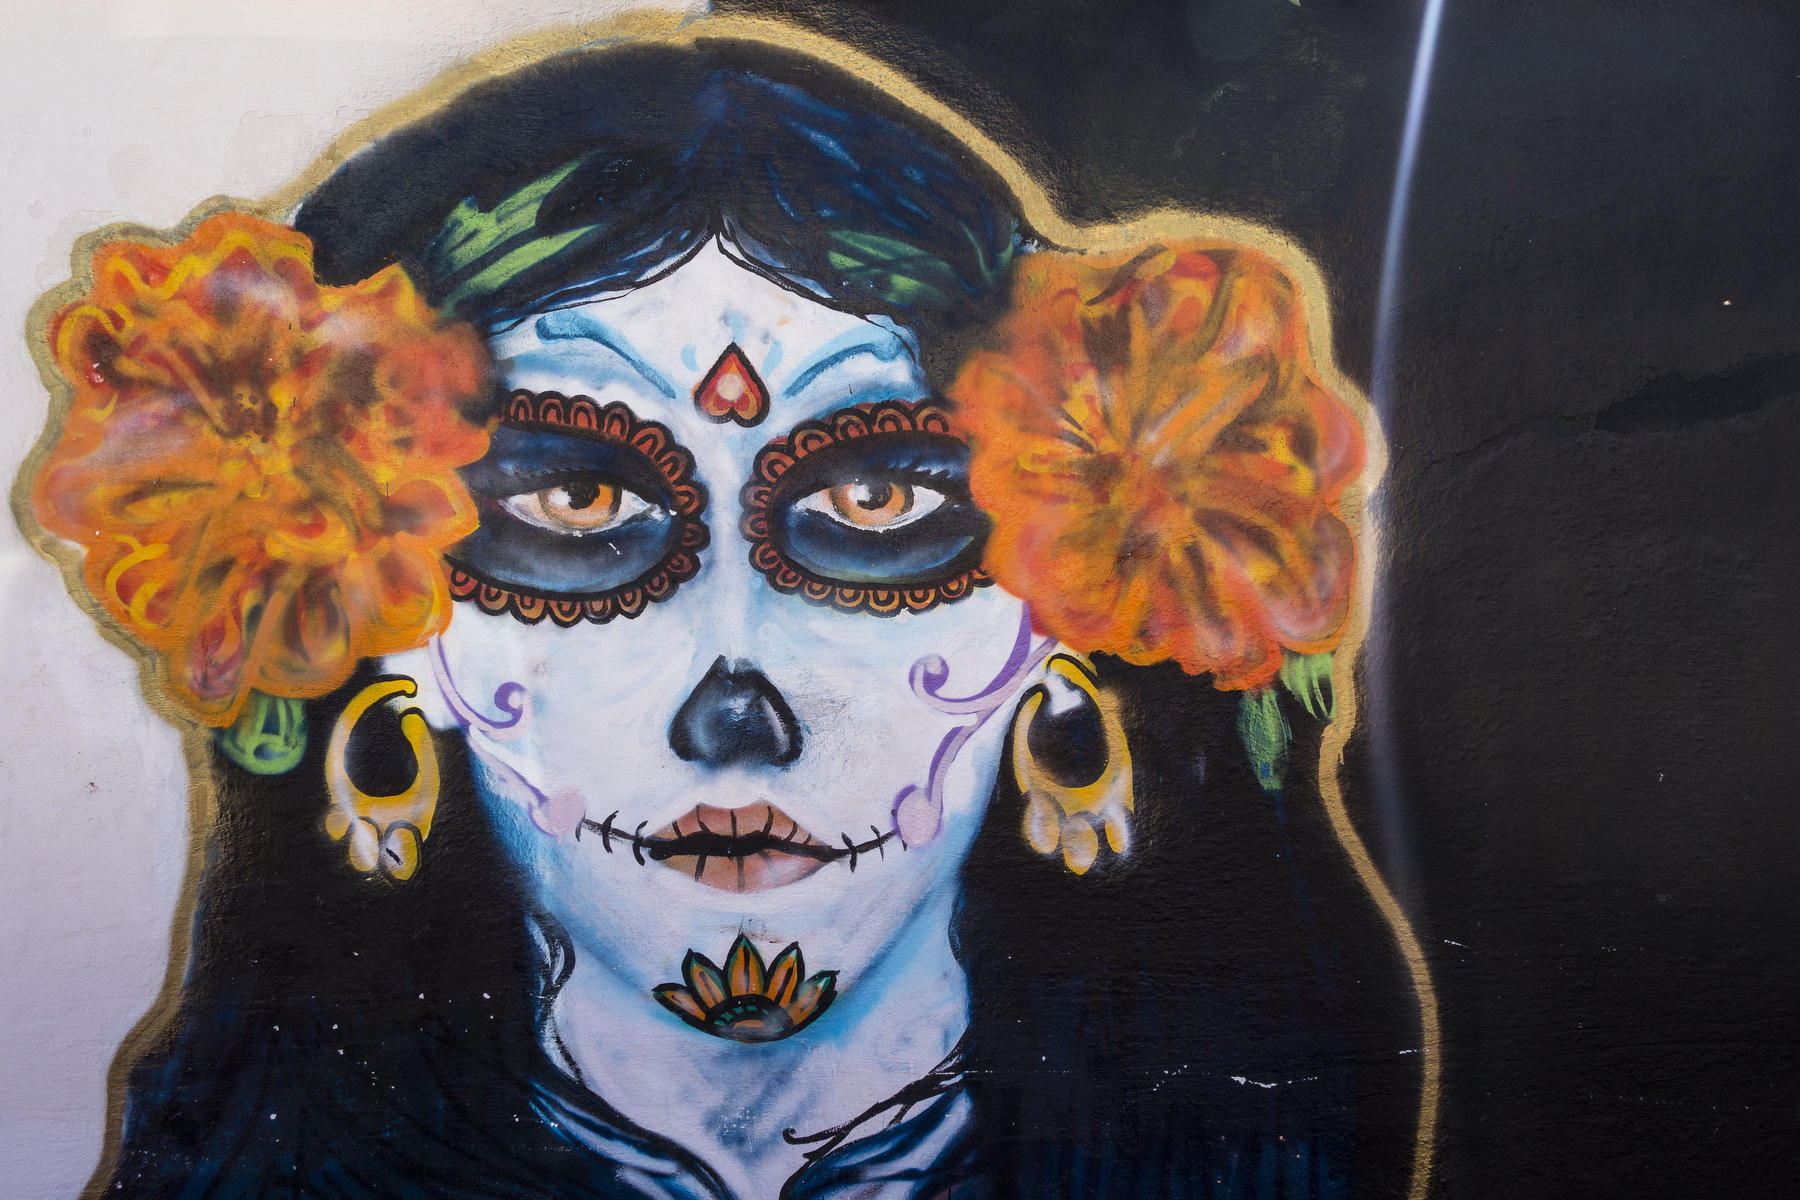 La CATRINA, symbol of The Day of the Dead on the wall of the town cemetery.  : PUERTO VALLARTA - Wall Art & Bicycle Tour : Viviane Moos |  Documentary Photographer